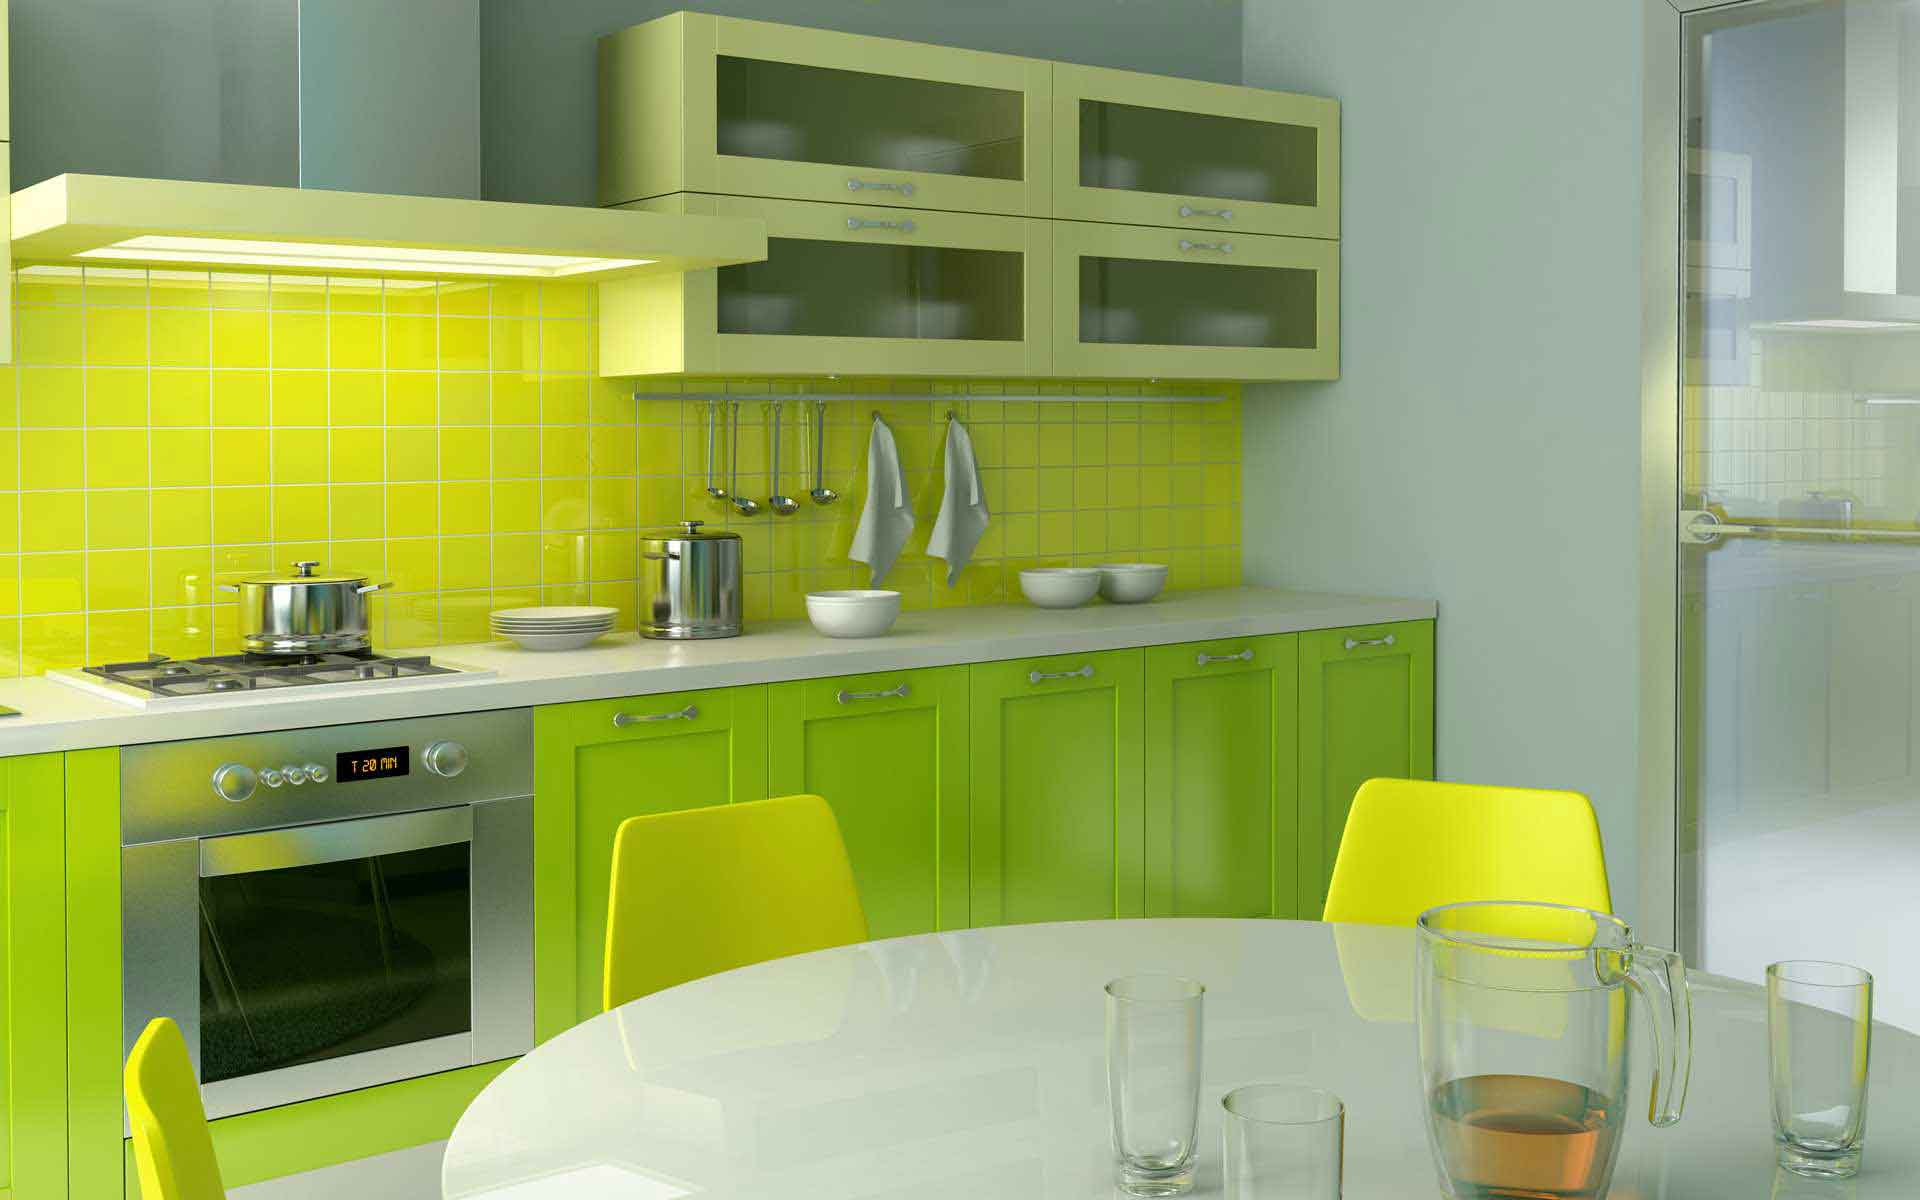 A straight kitchen is a one wall kitchen layout with counter space on both  sides of the cooking range  Ideal for small kitchen areas  this design can   Kitchen   Straight   ZIYKO. Small Straight Kitchen Design. Home Design Ideas